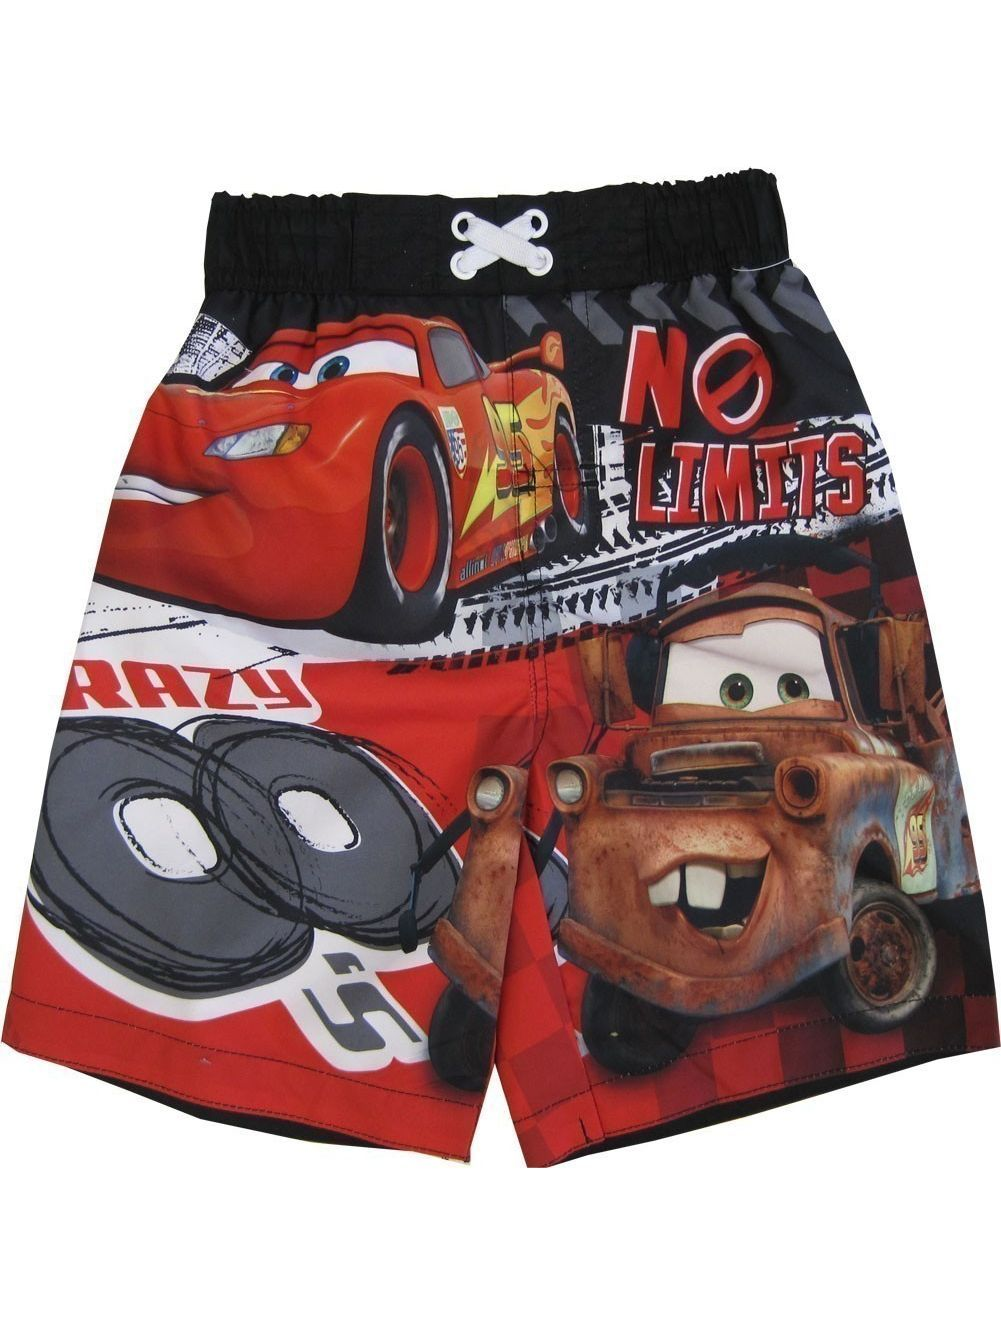 Thomas And Friends Baby Boys Red Blue Cartoon Print UPF 50+ Swim Shorts